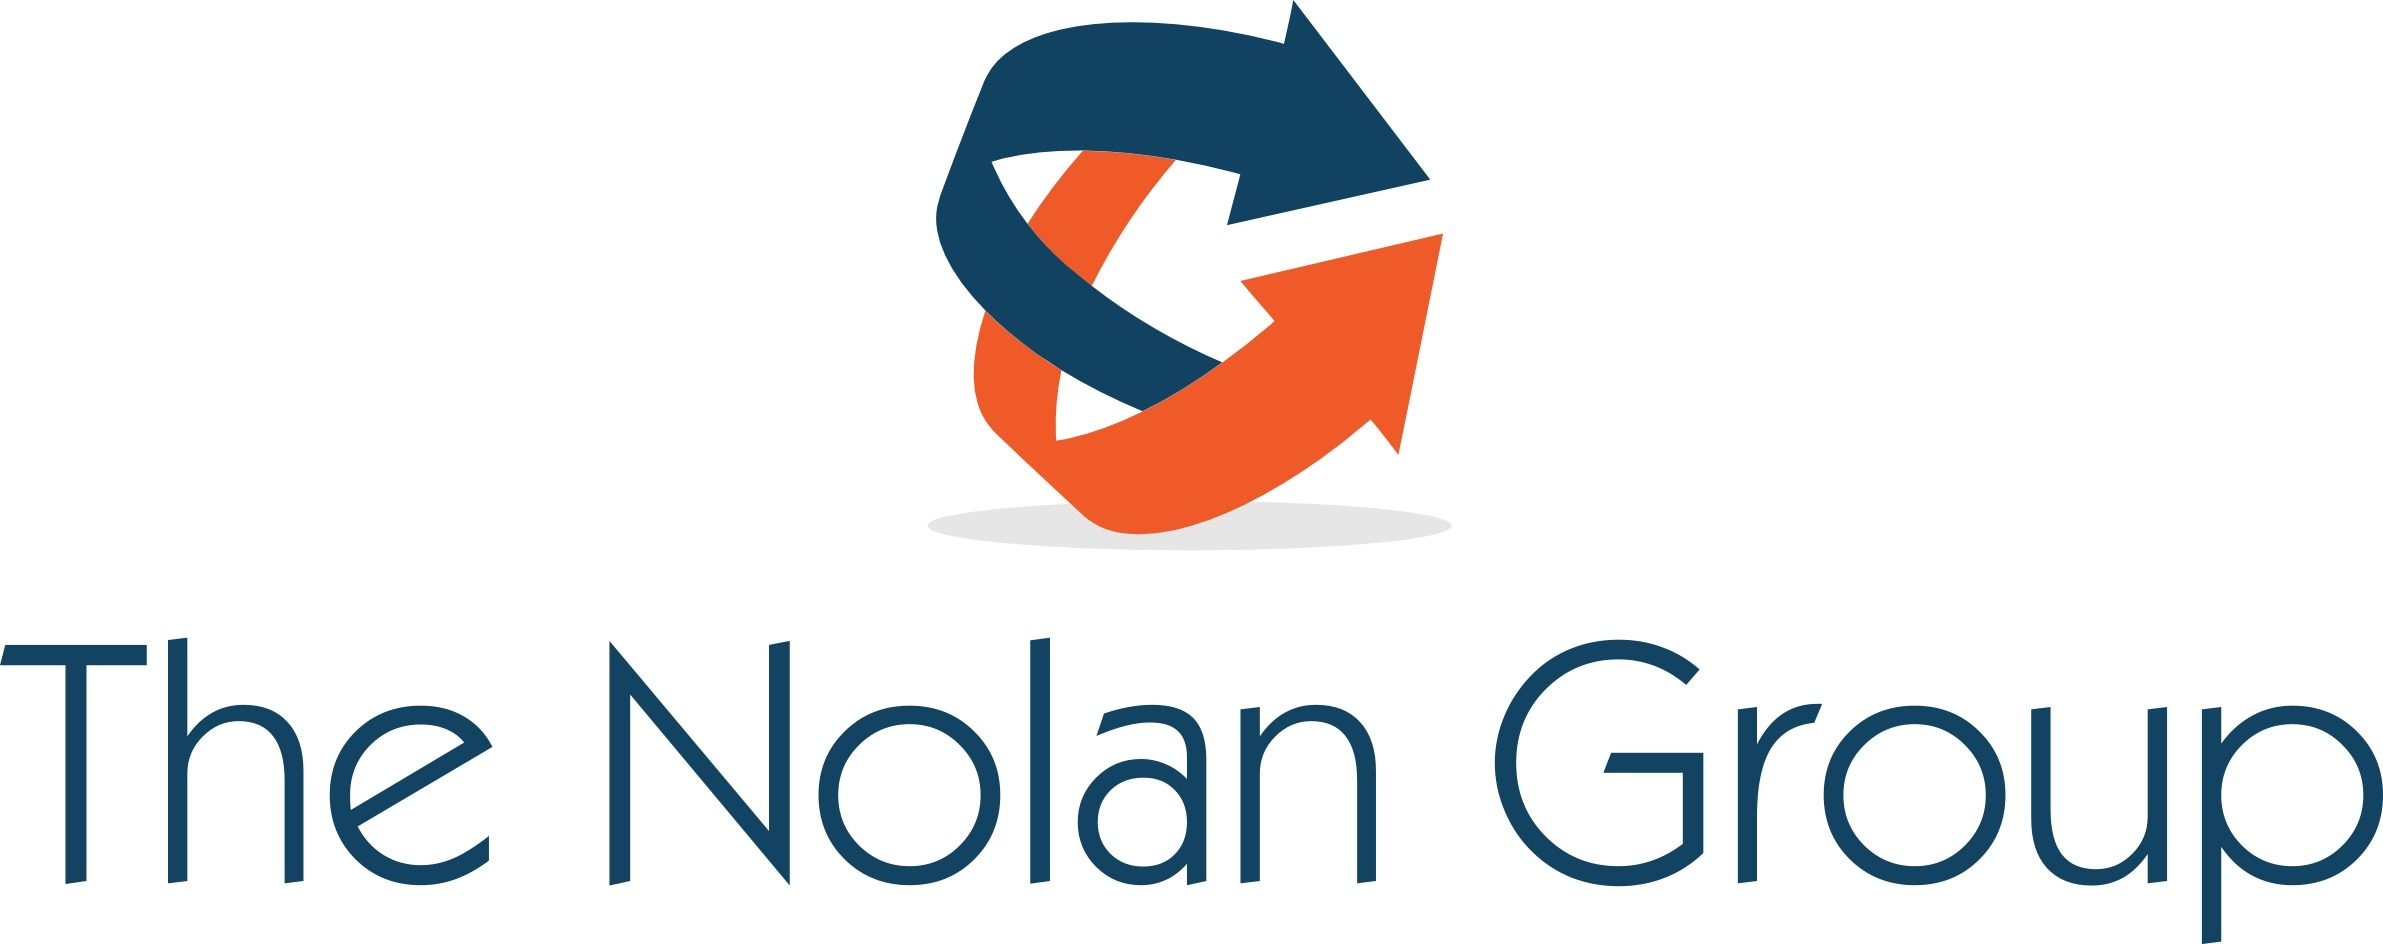 The Nolan Group